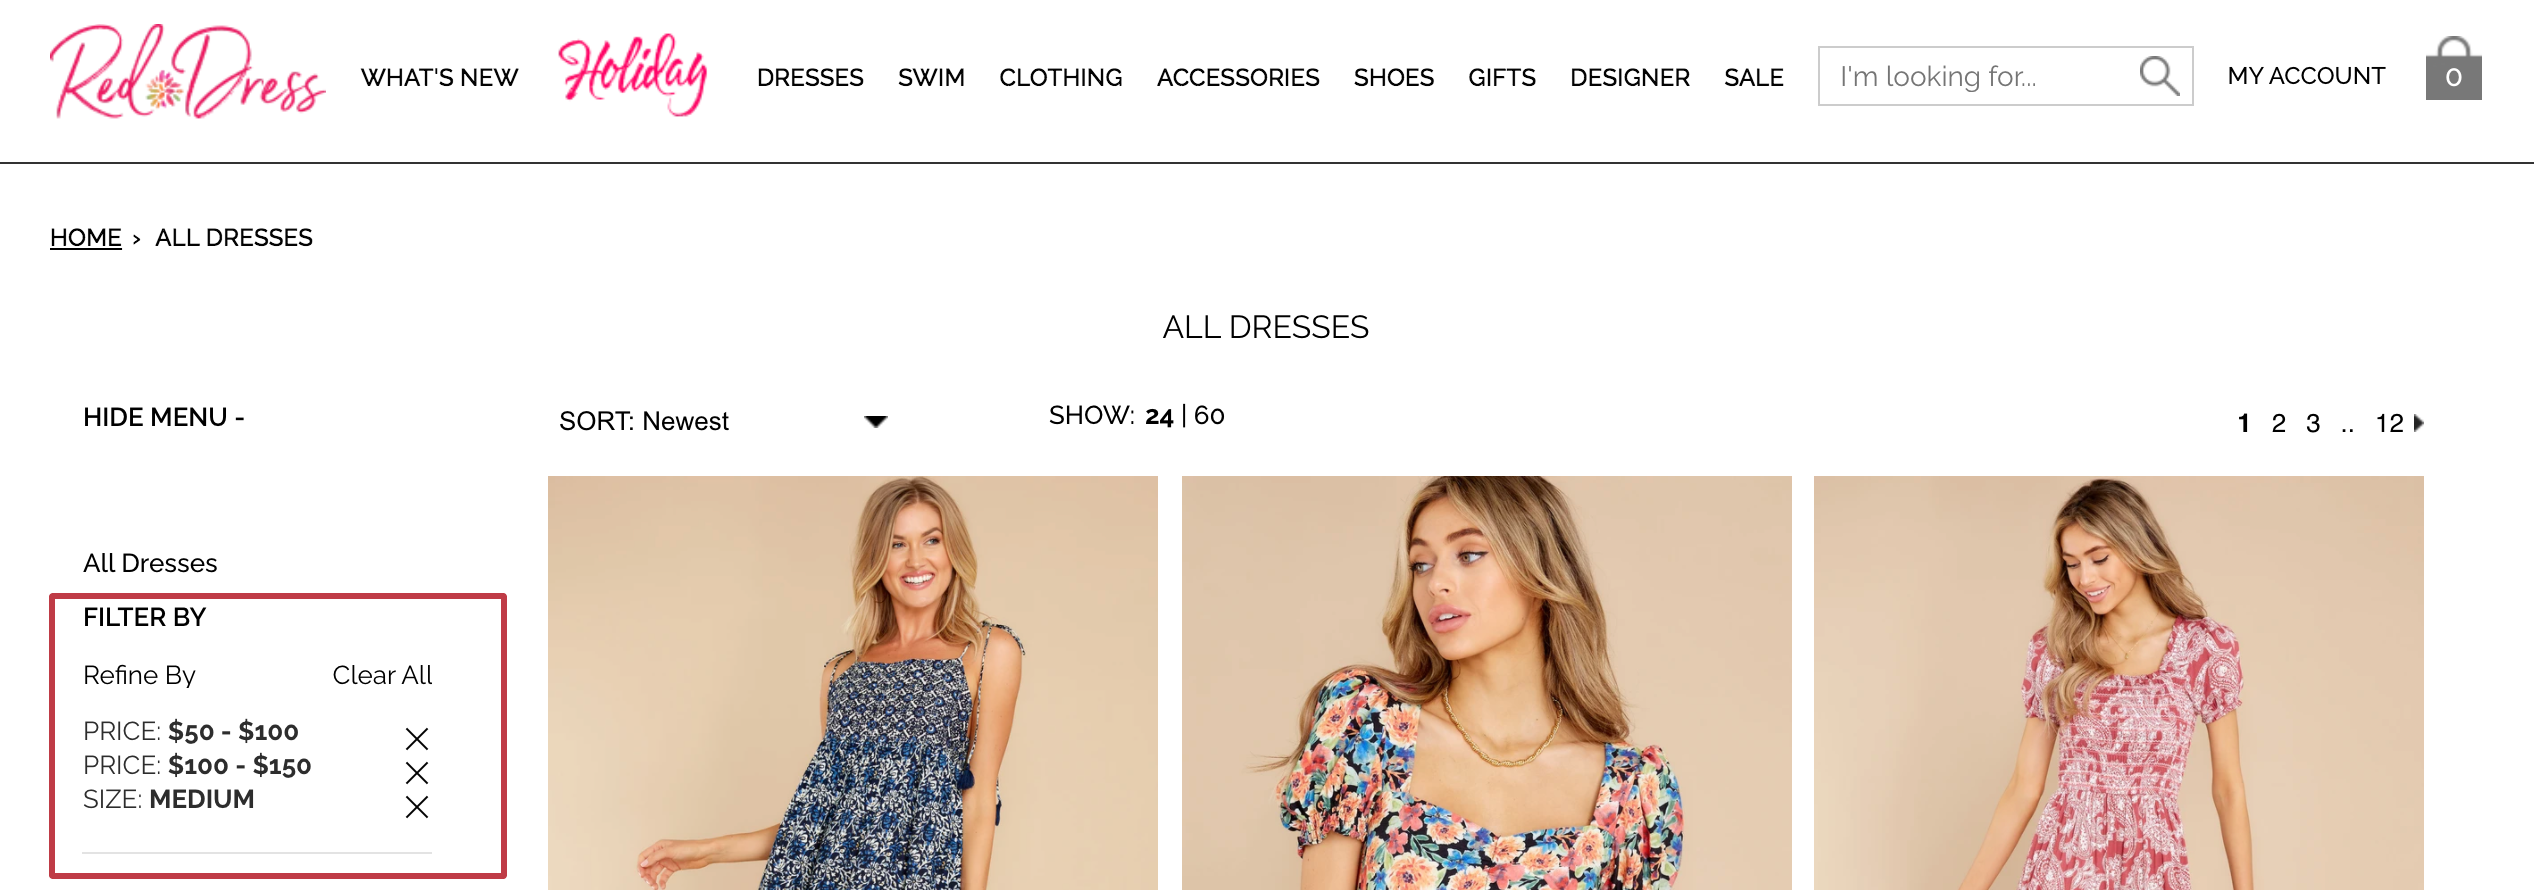 applied filter design example boost commerce